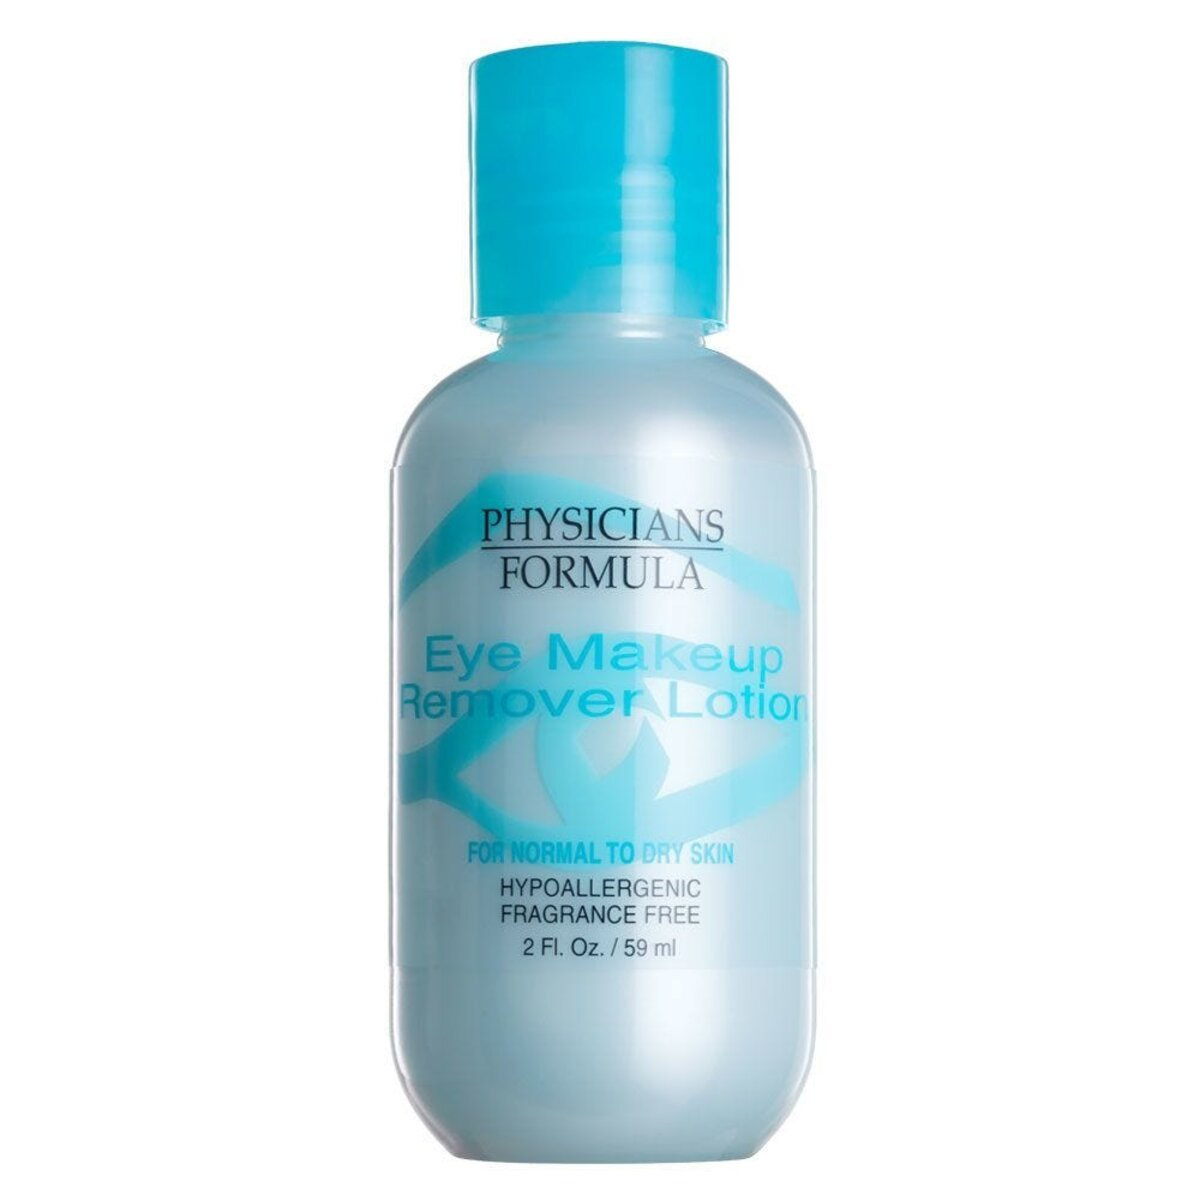 EYE MAKEUP REMOVER LOTION - PHYSICIANS FORMULA